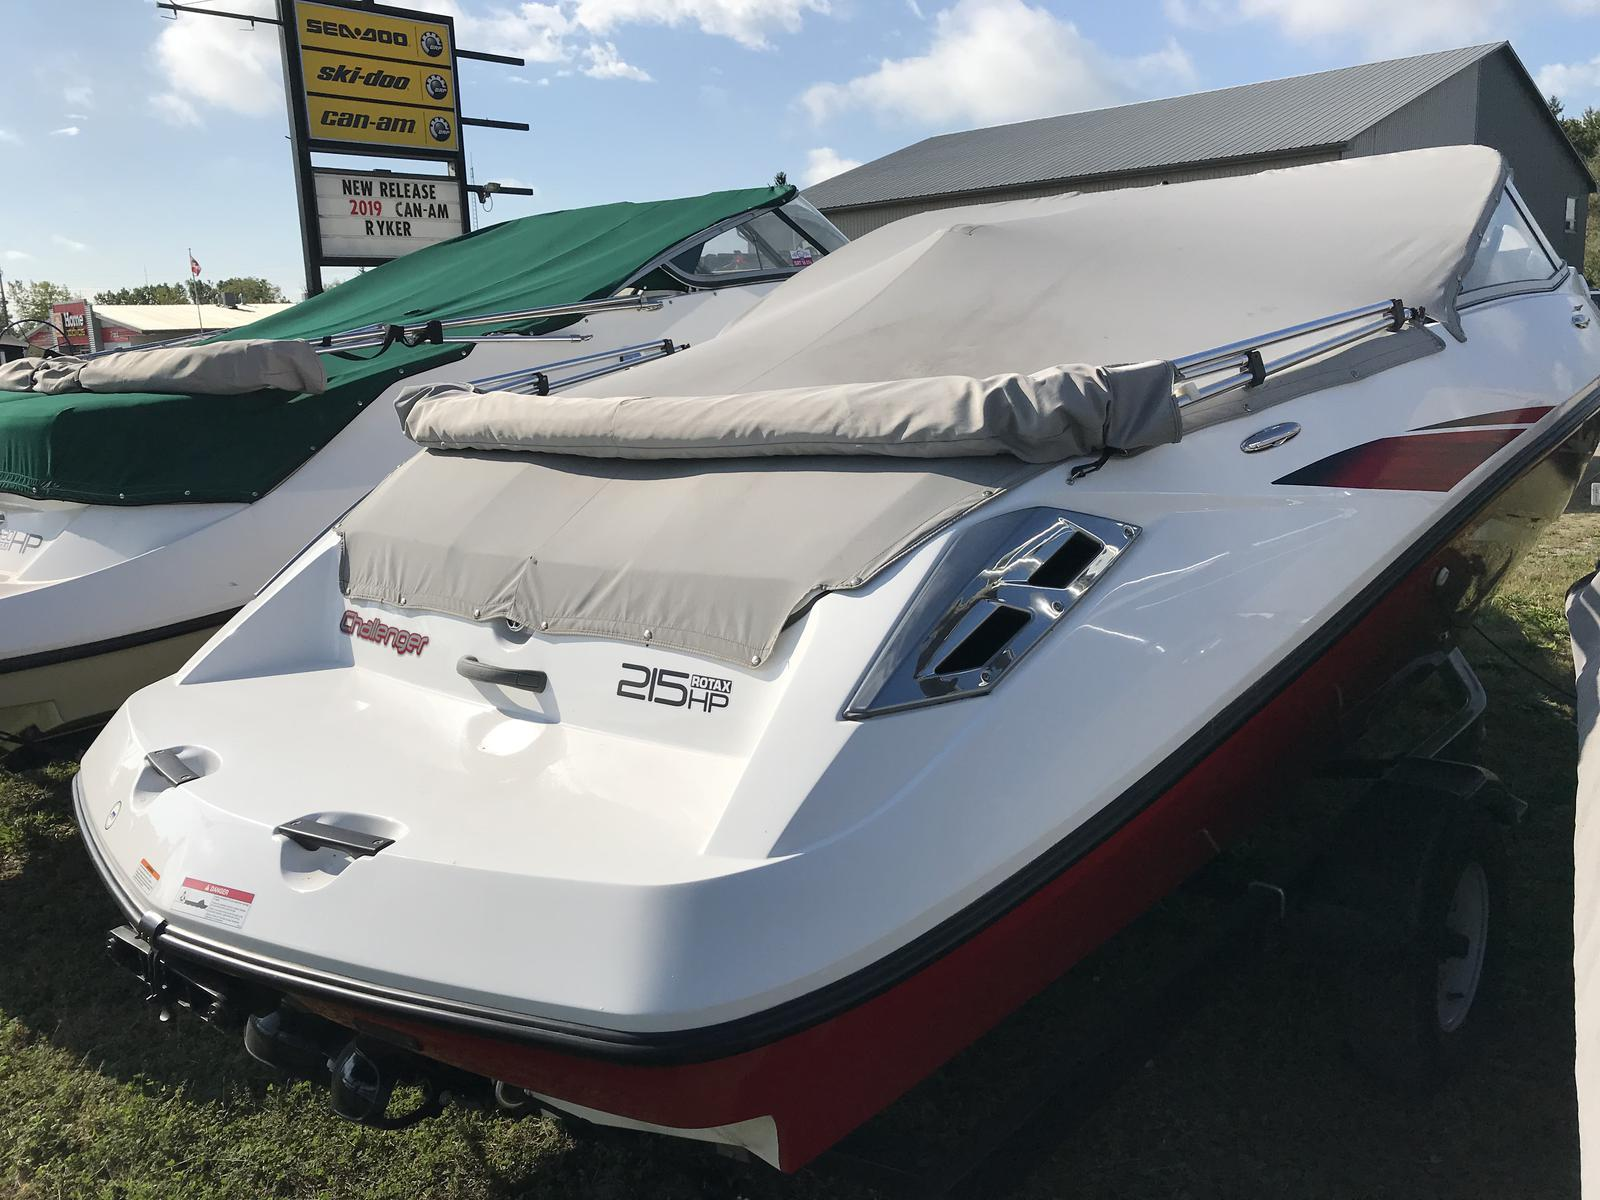 2009 Sea-Doo Sport Boats SEADOO CHALLENGER 180 SE for sale in Ayr